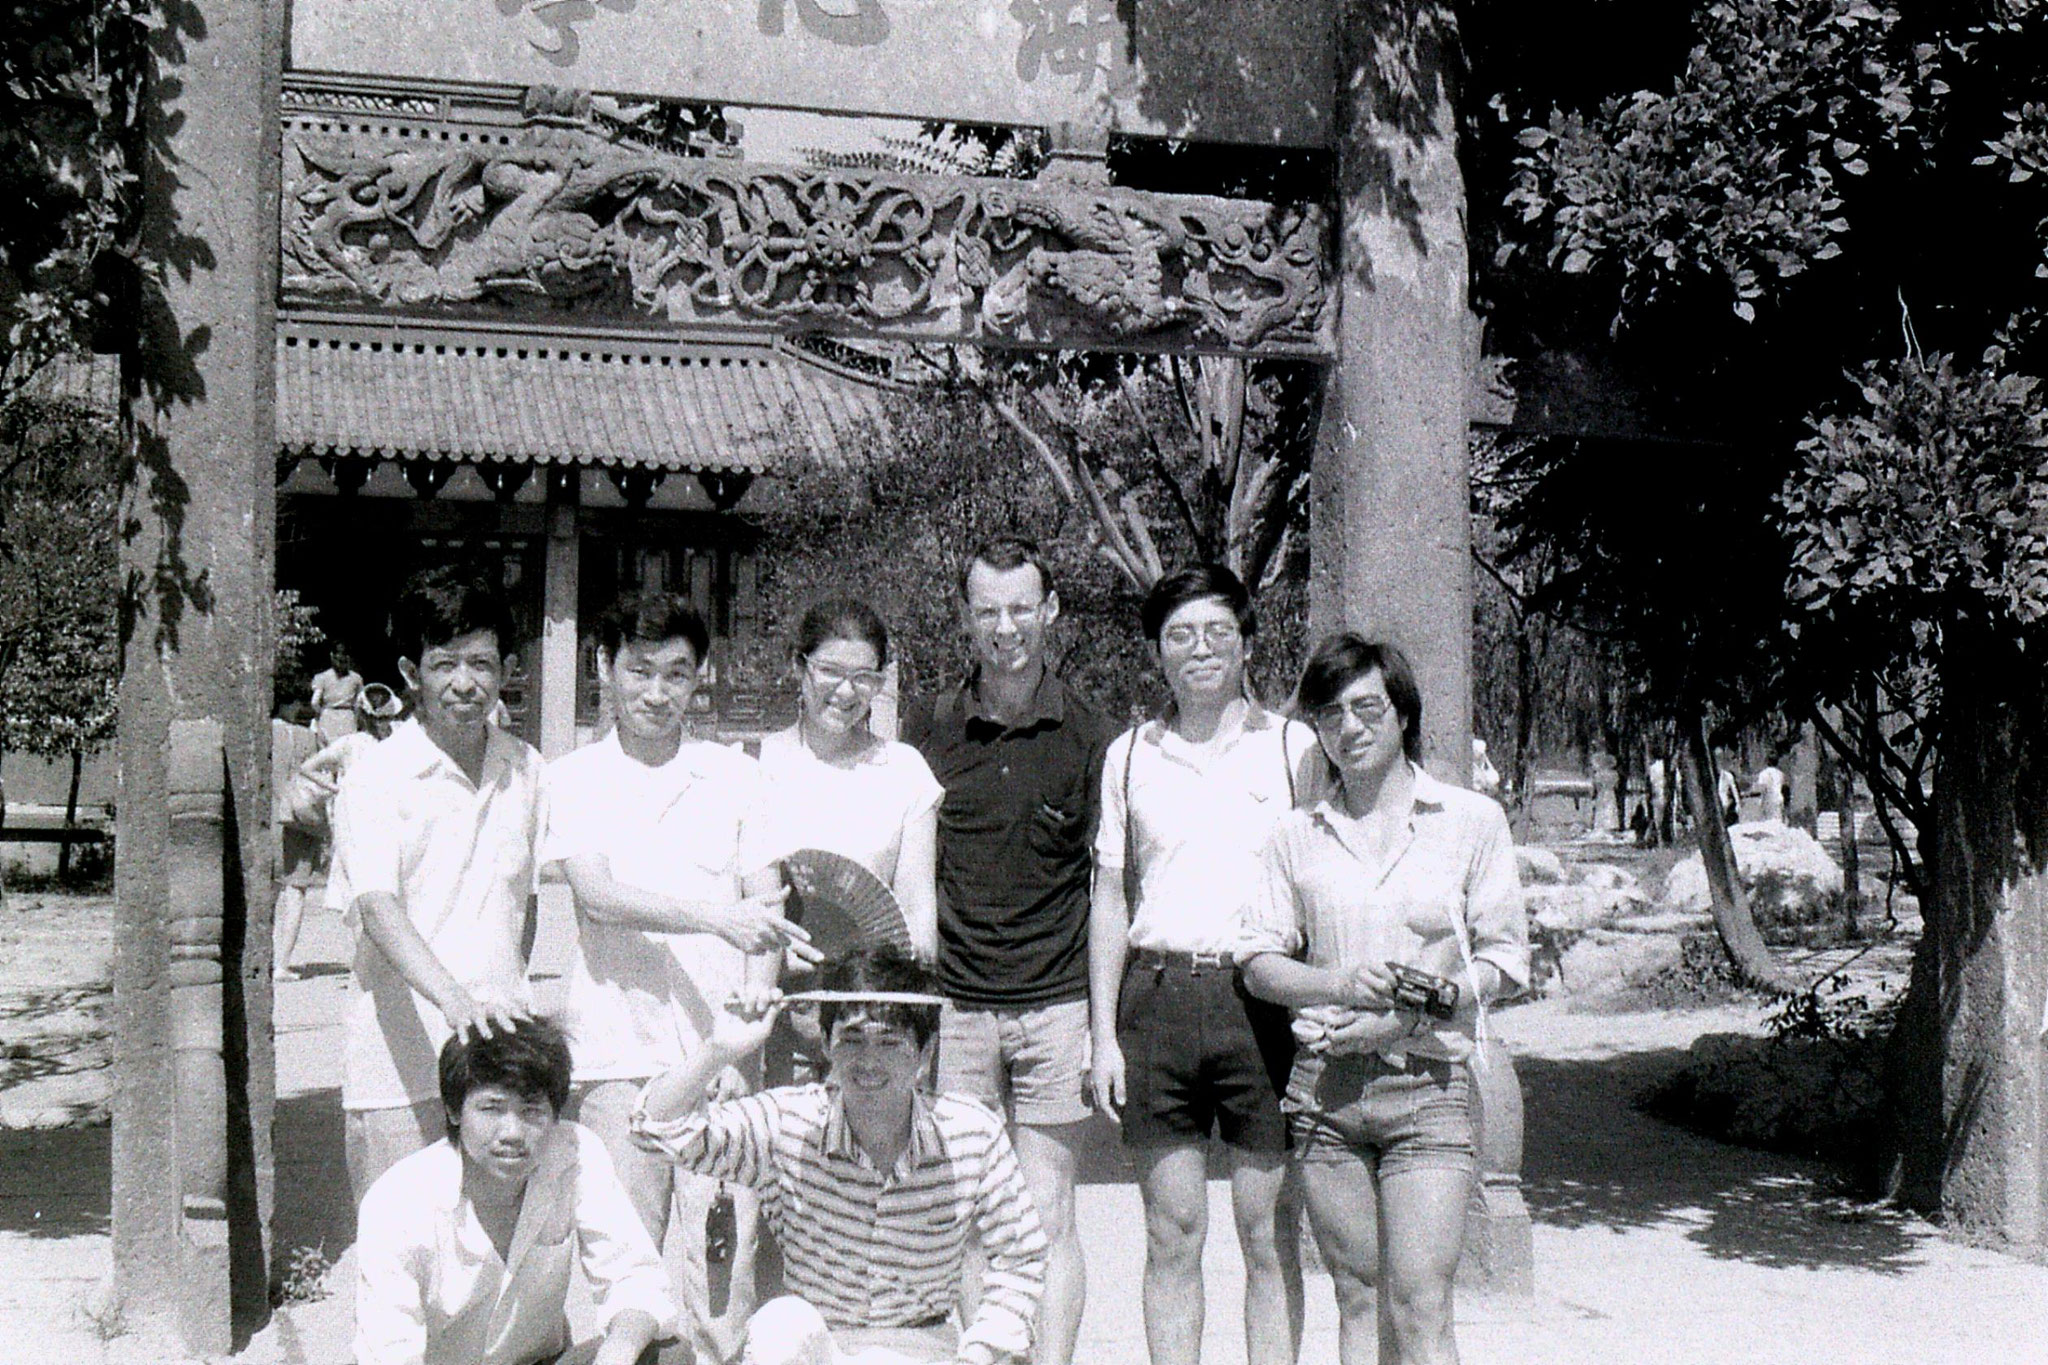 16/7/1989: 7: our group at mid lake pavilion